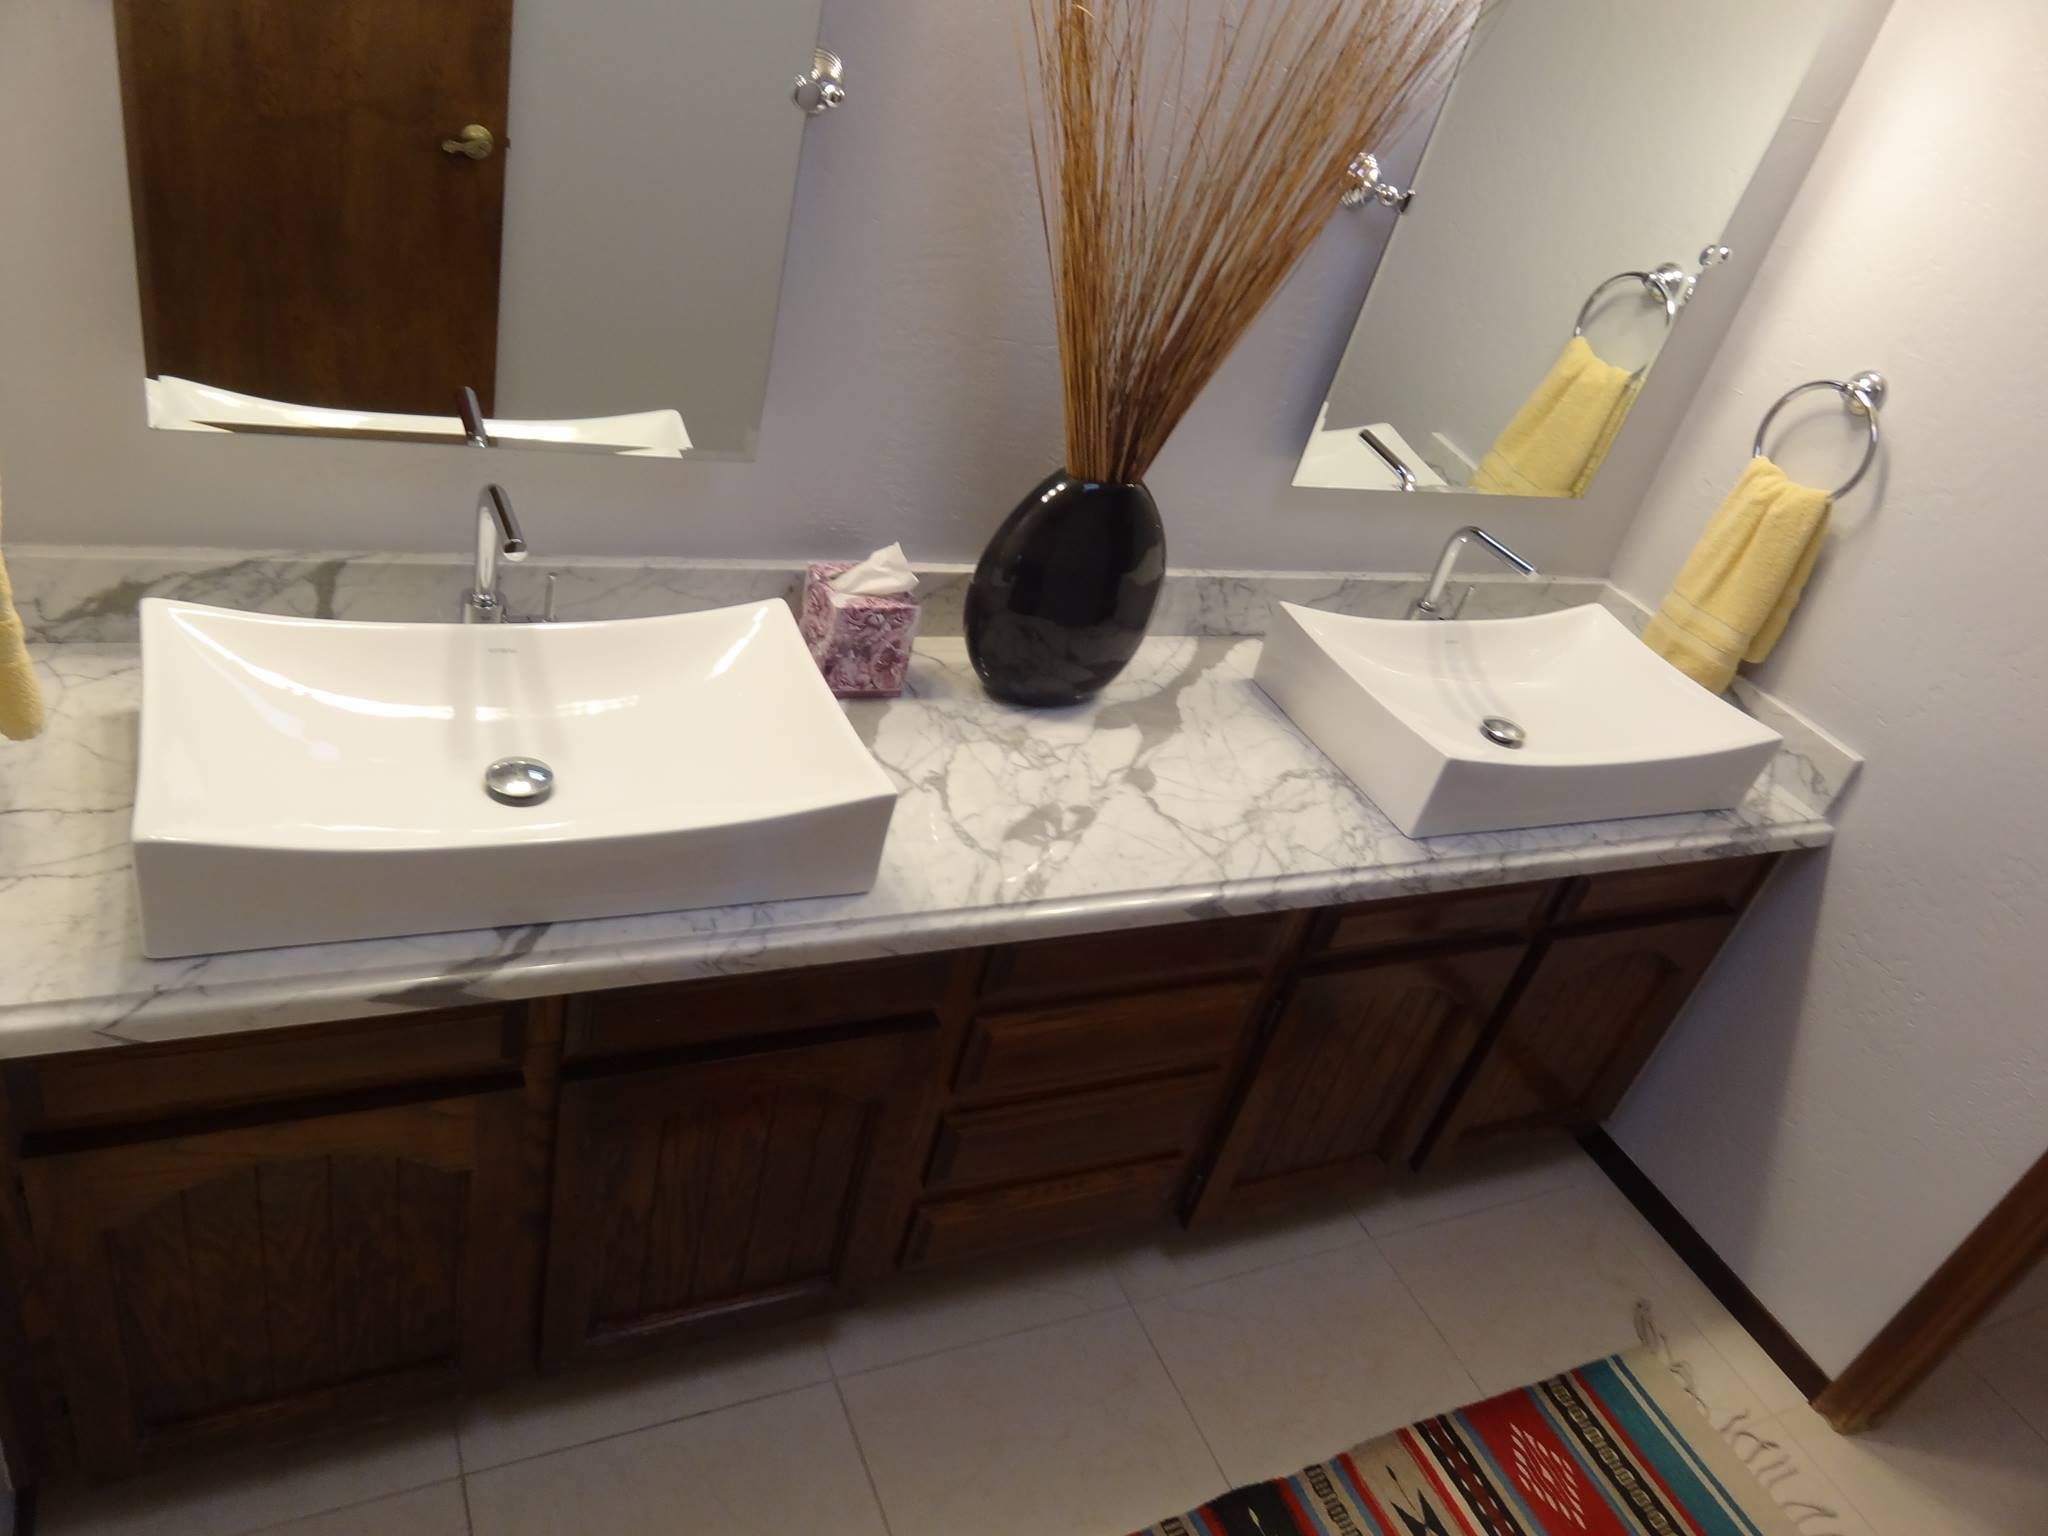 New Vanity Top And Drop In Sinks Really Modernize A Bathroom Mesmerizing Phoenix Bathroom Remodeling Decorating Design